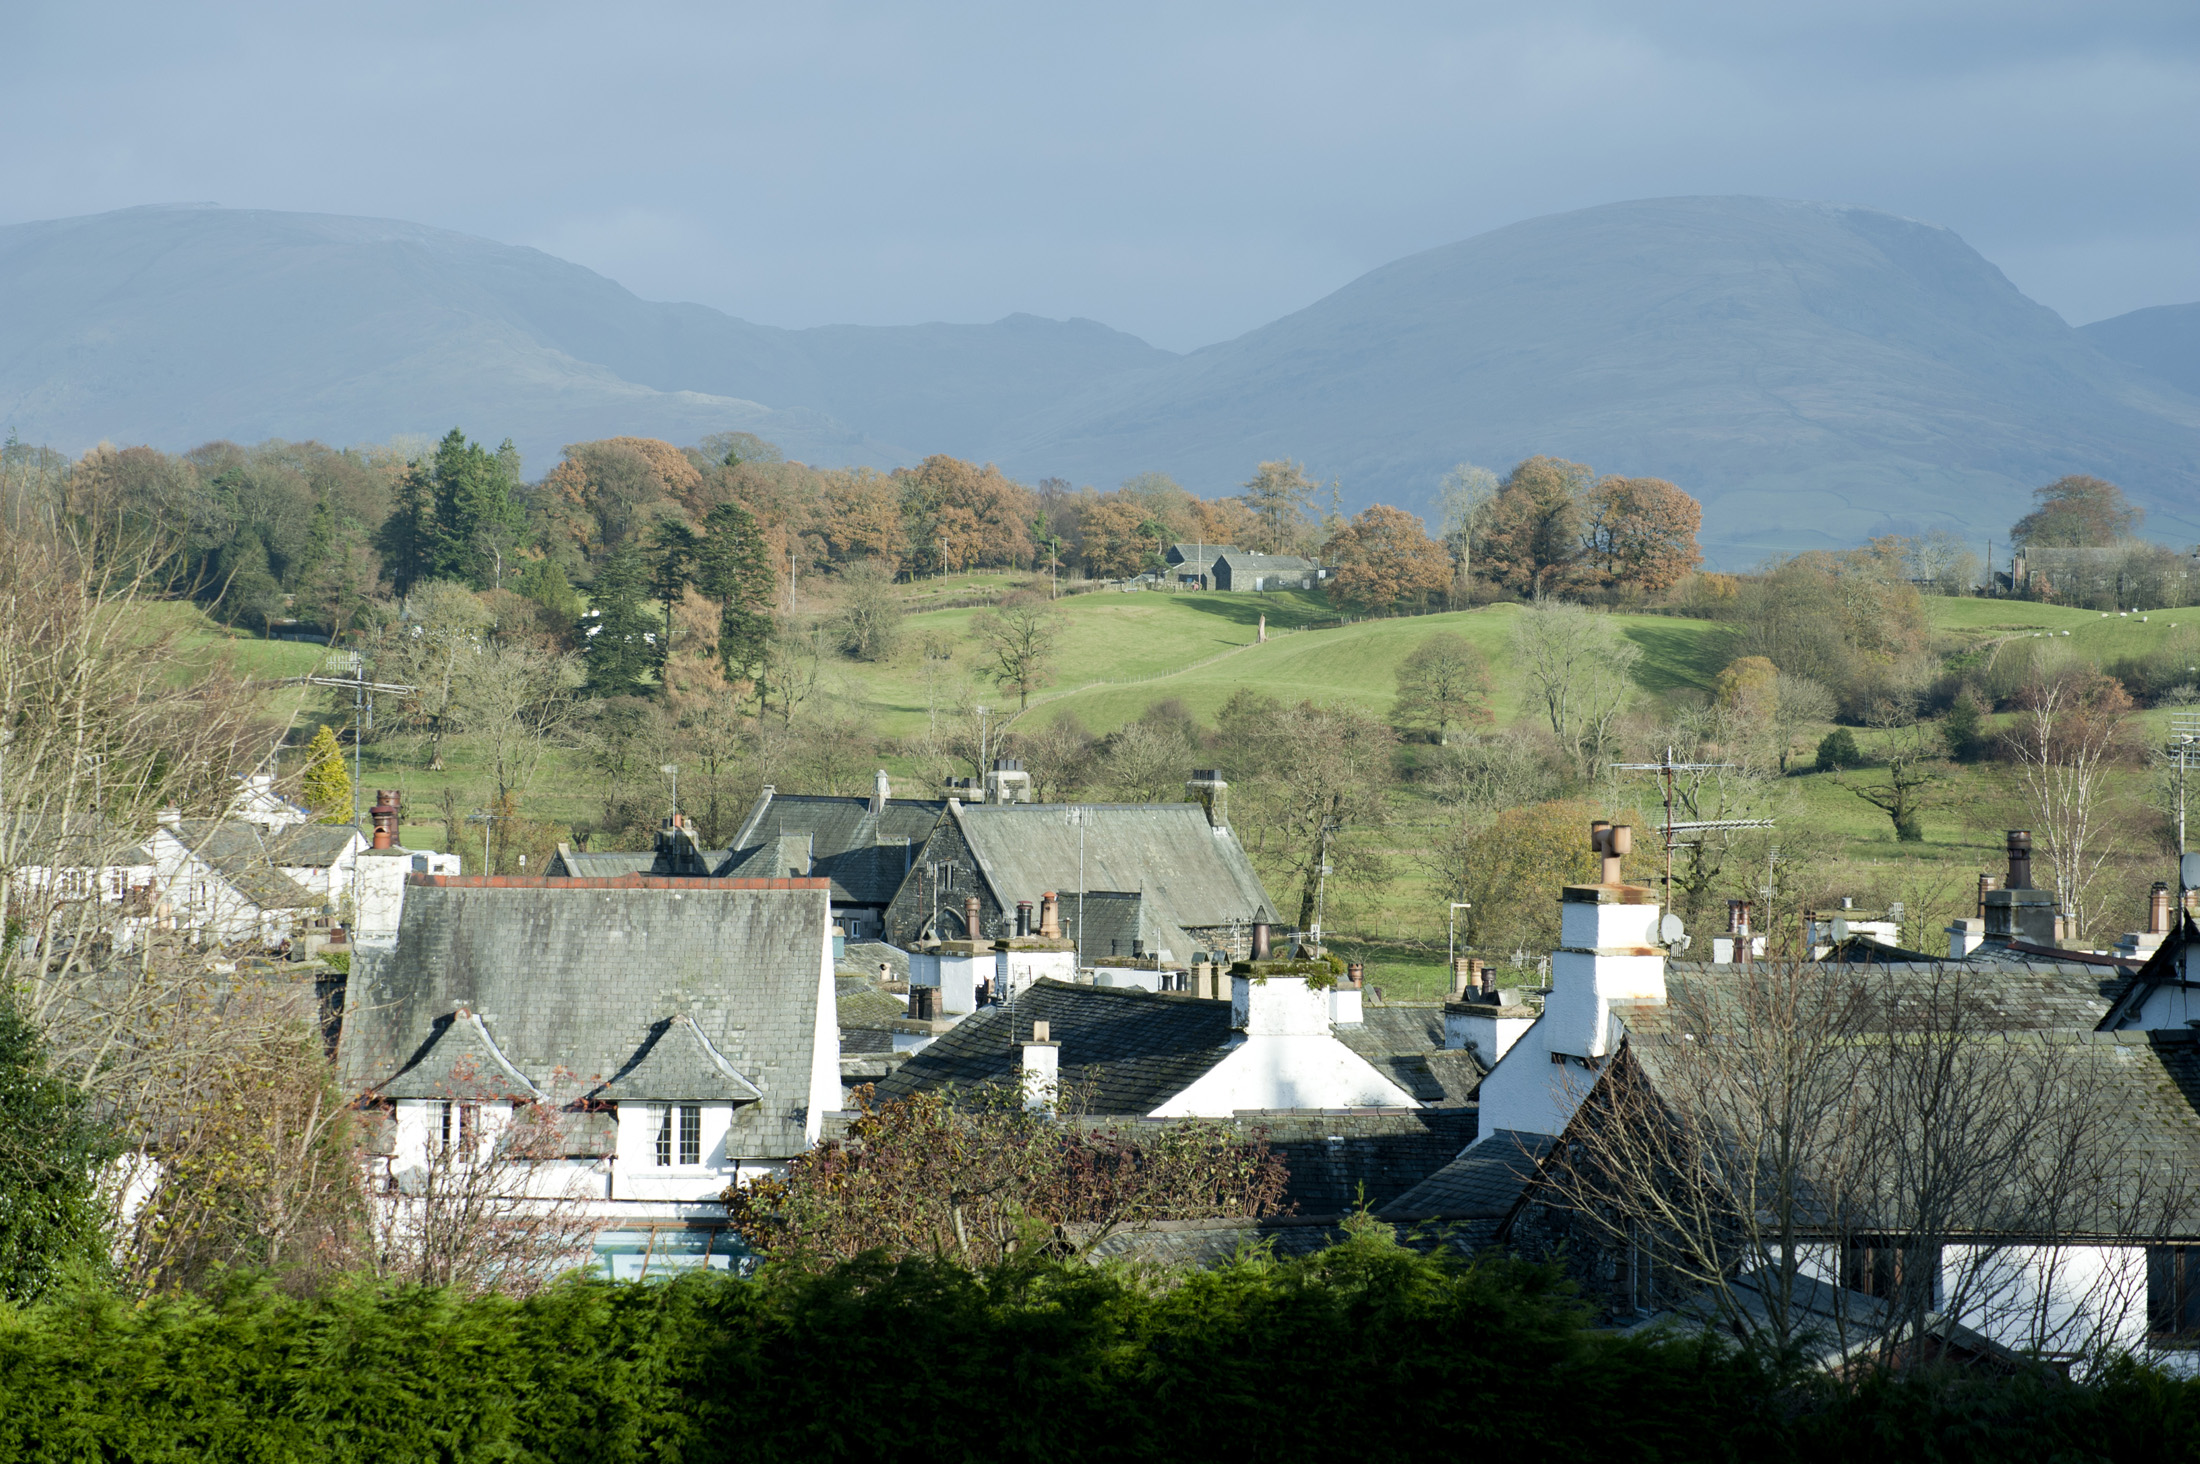 View over the rooftops of the whitewashed cottages of Hawkshead village to Red Screes in the English Lake District in Cumbria